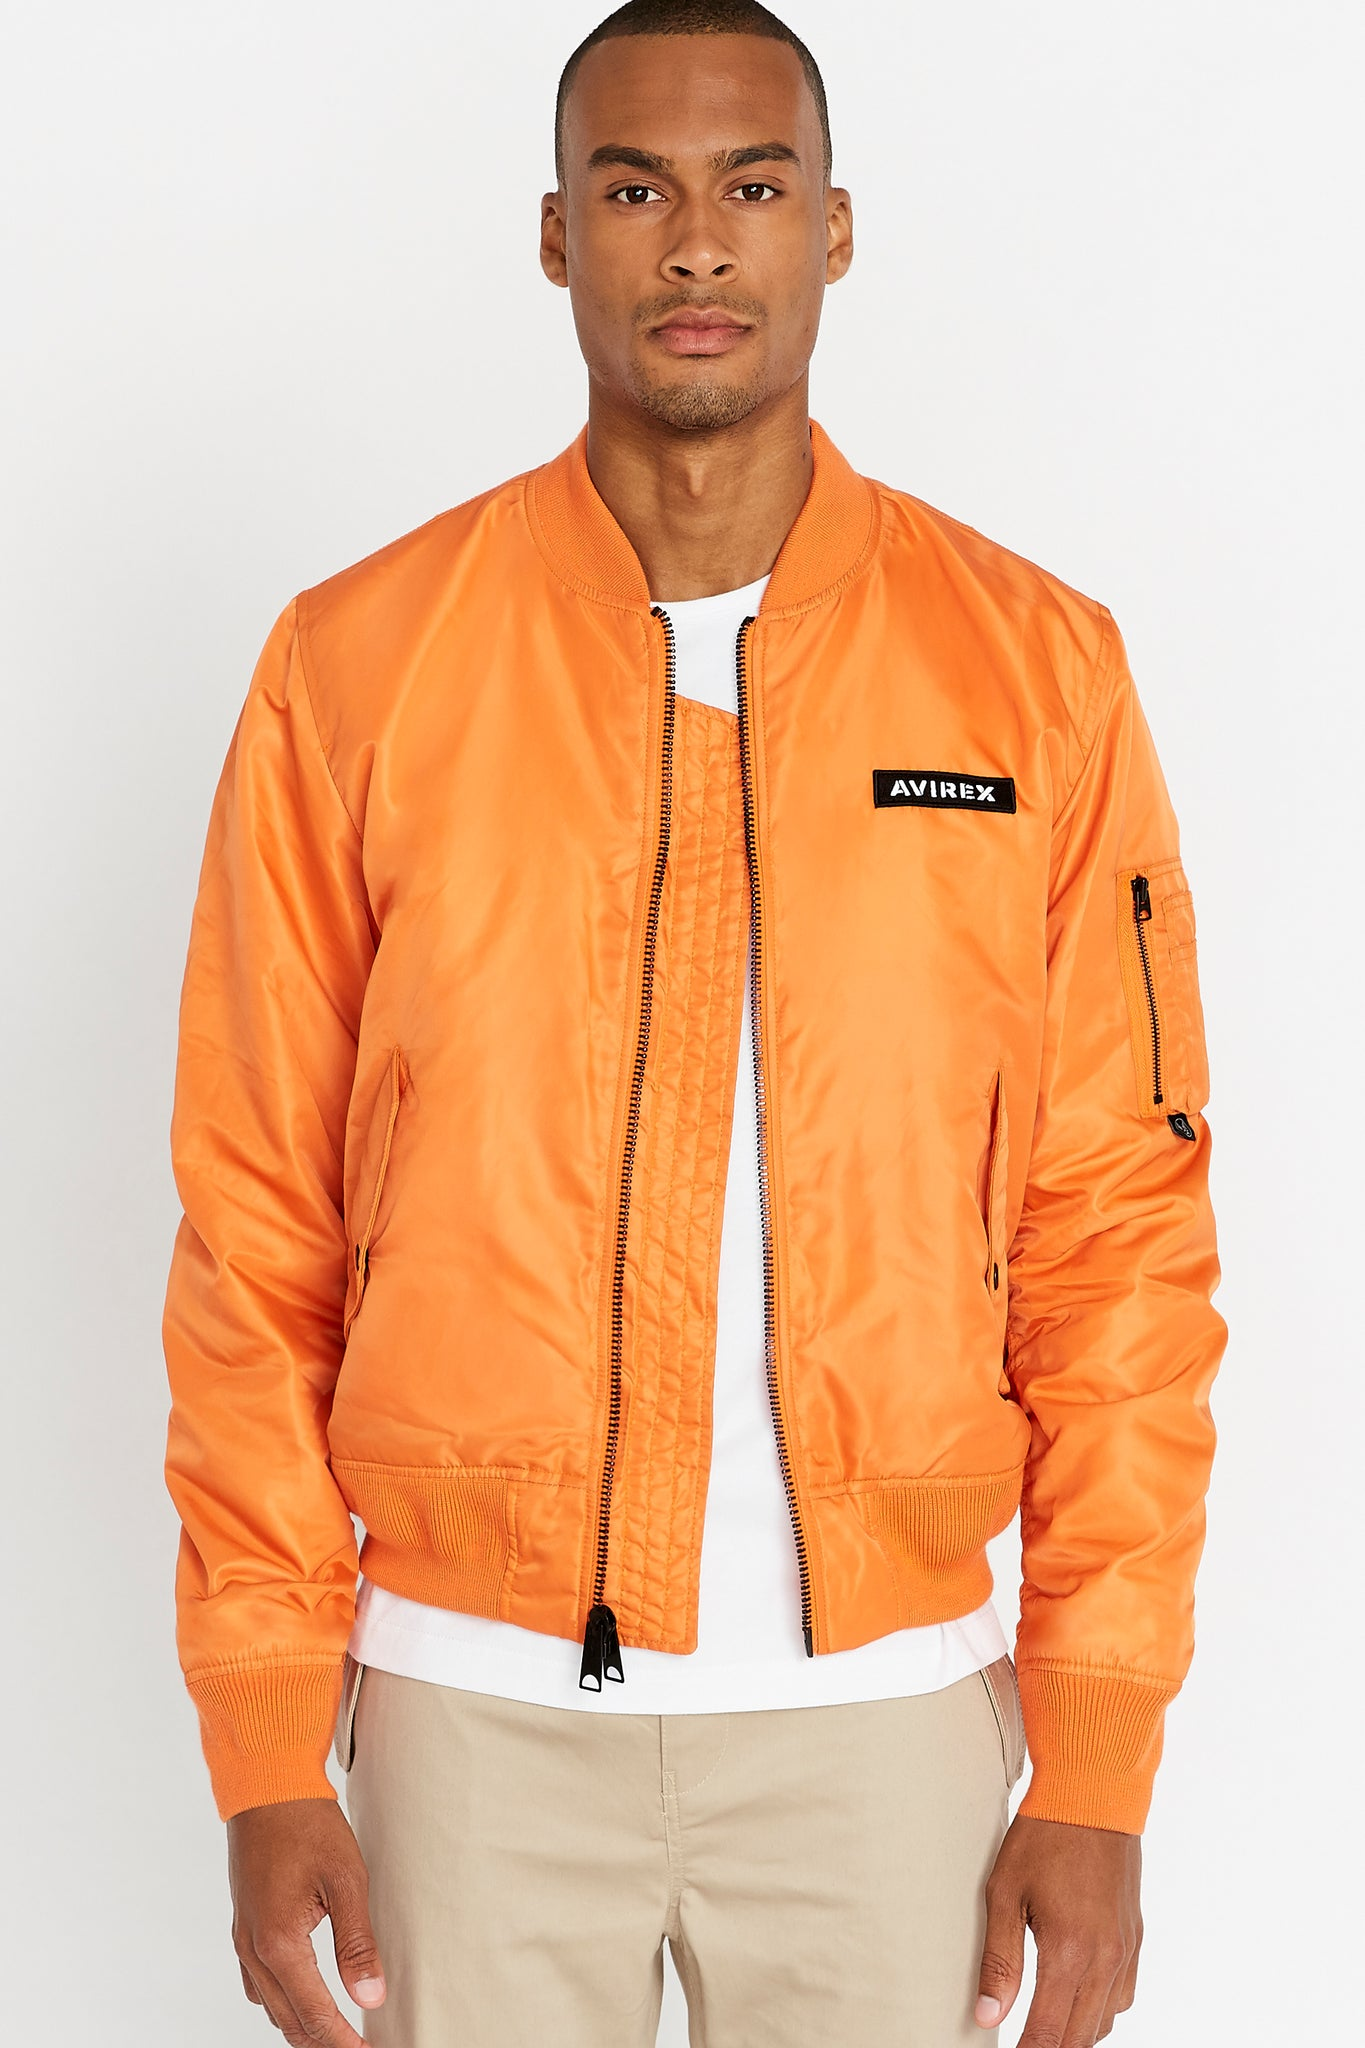 Front view of men wearing an open orange original aviation bomber nylon jacket with Iconic utility pocket on sleeve and two side pockets